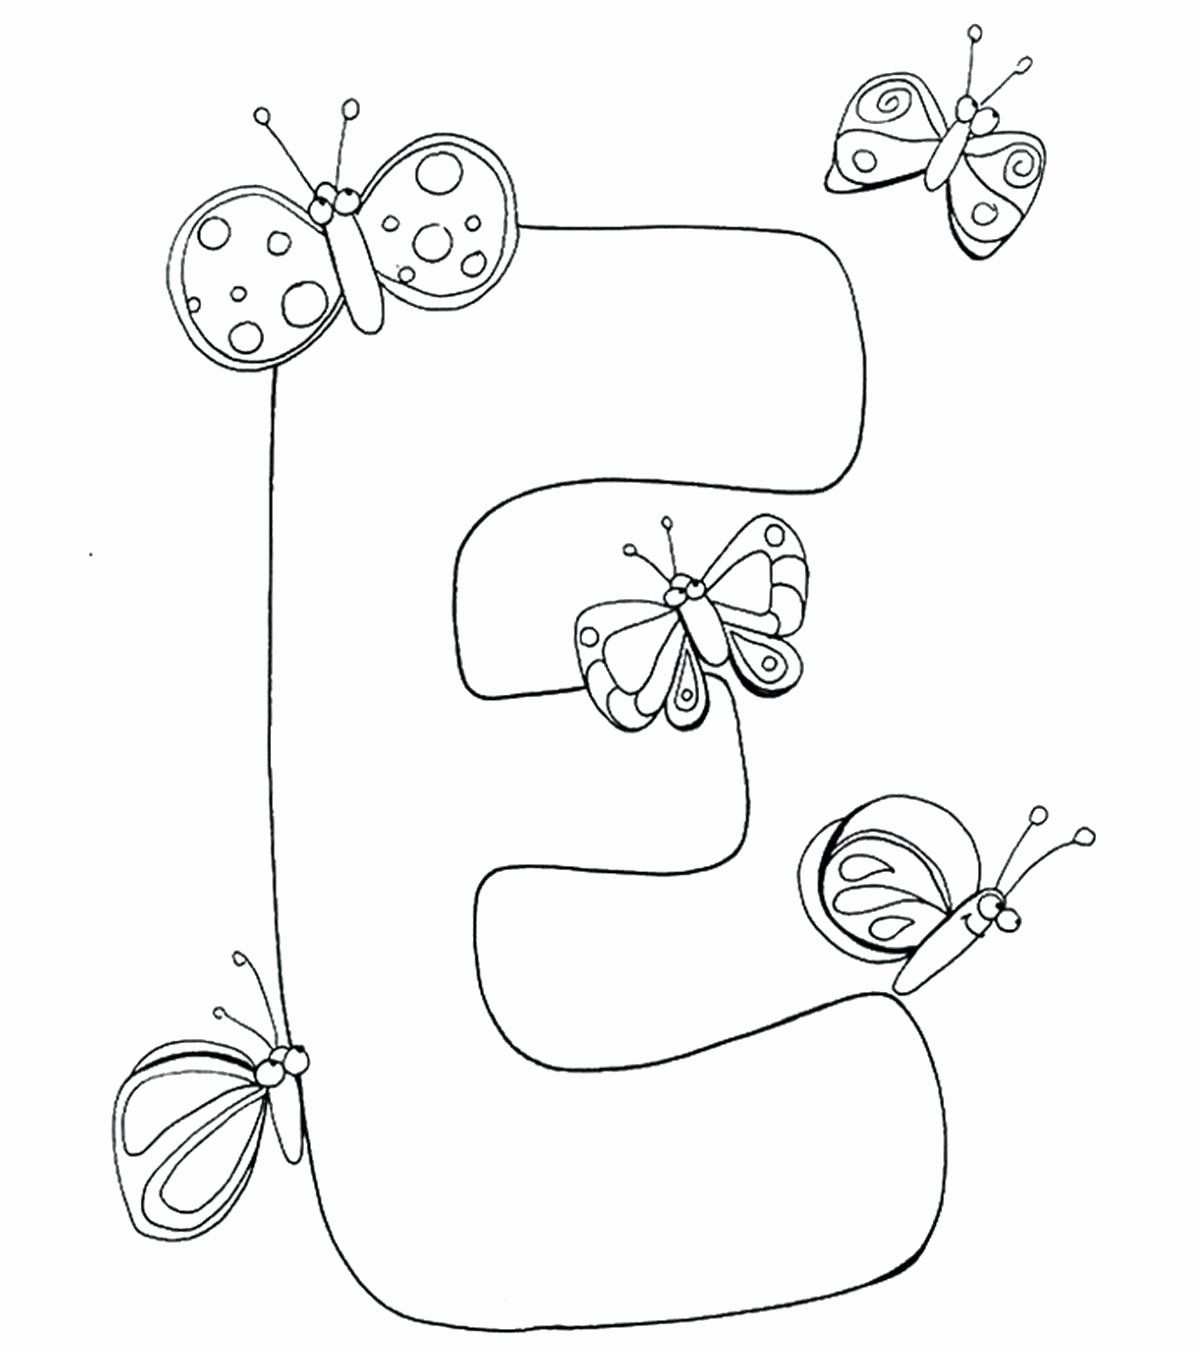 Toddler Learning Coloring Pages